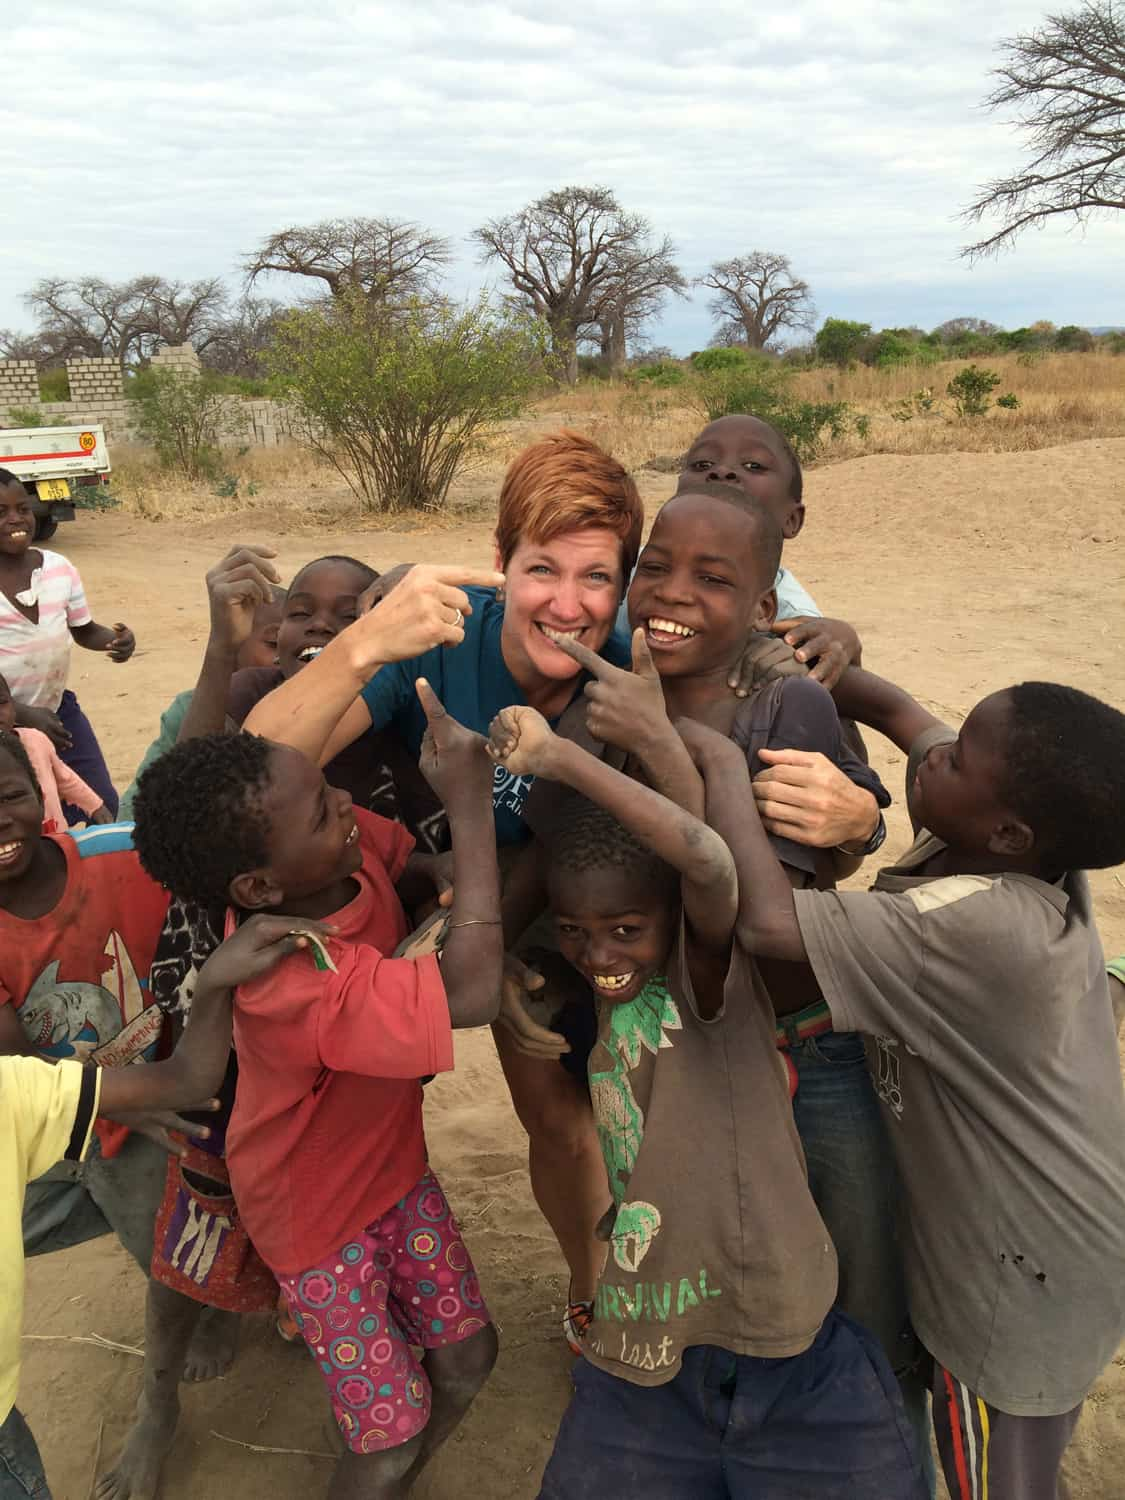 Anne leads high school building expeditions to the Mangochi district of Malawi in southern Africa for the Warm Hearts Foundation (link to https://warmheartsfoundation.org/)